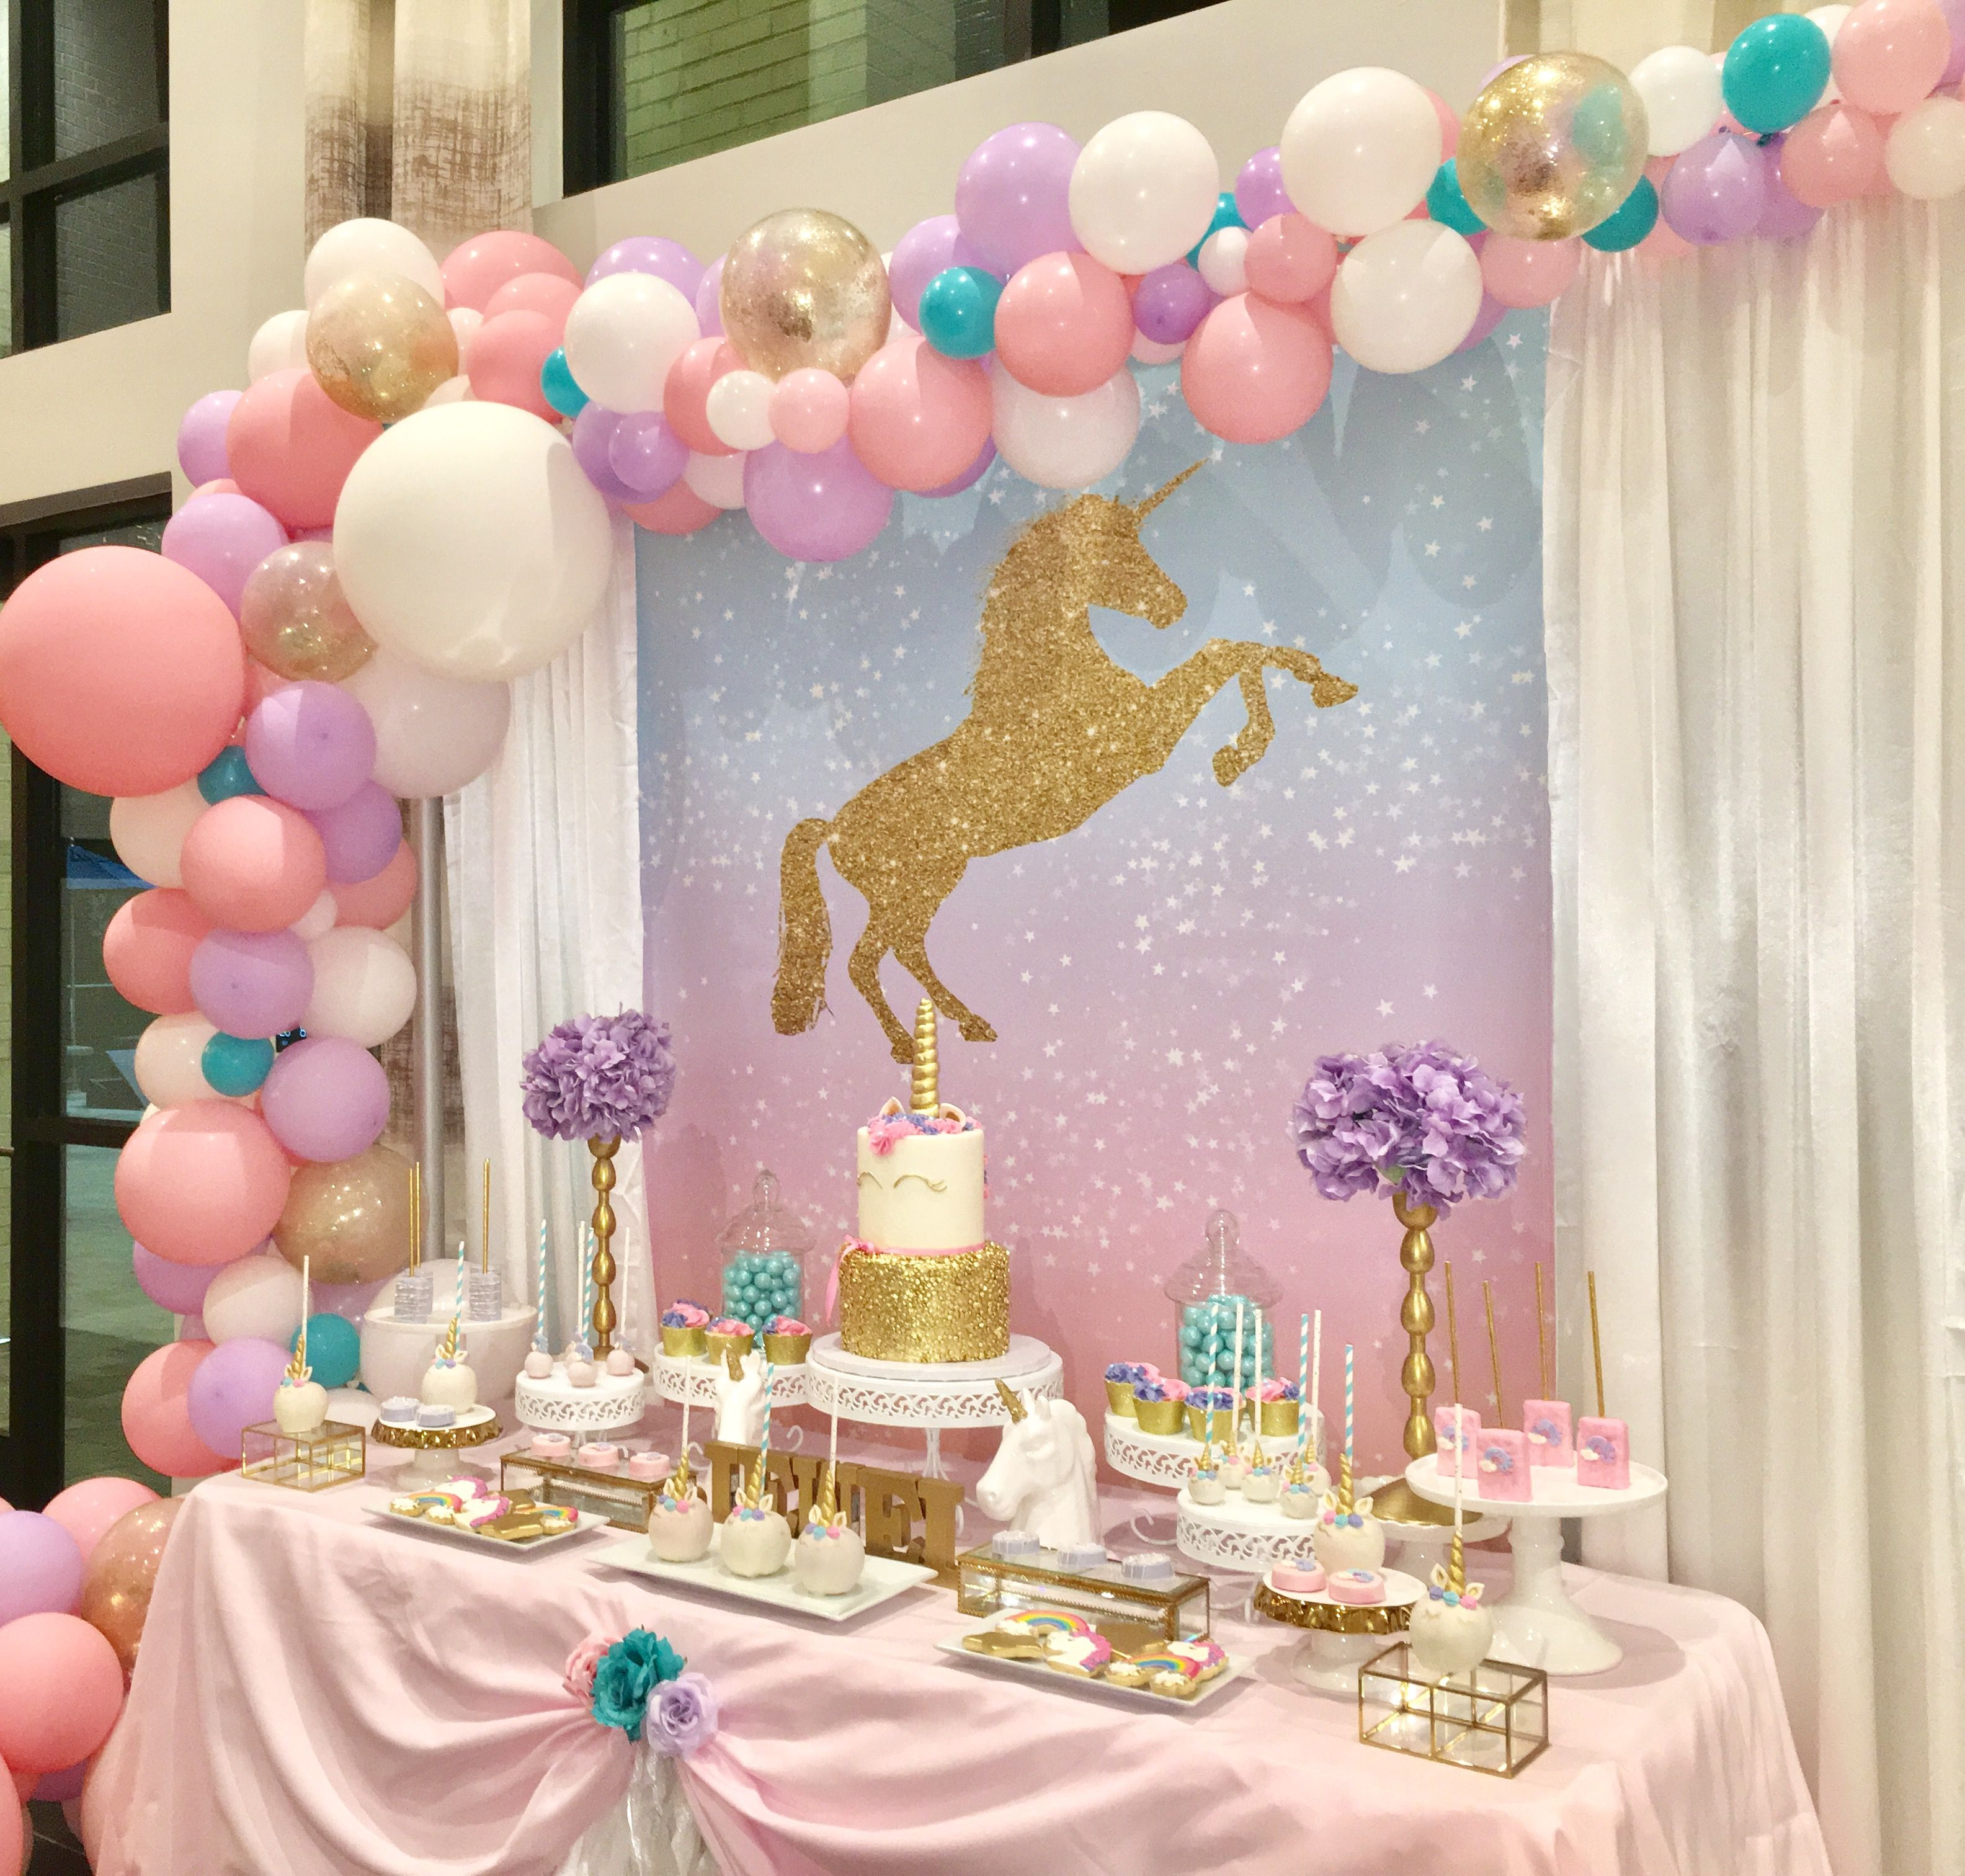 Unicorn Birthday Party Setup For My Daughter Popandparties On - Children's birthday parties galway